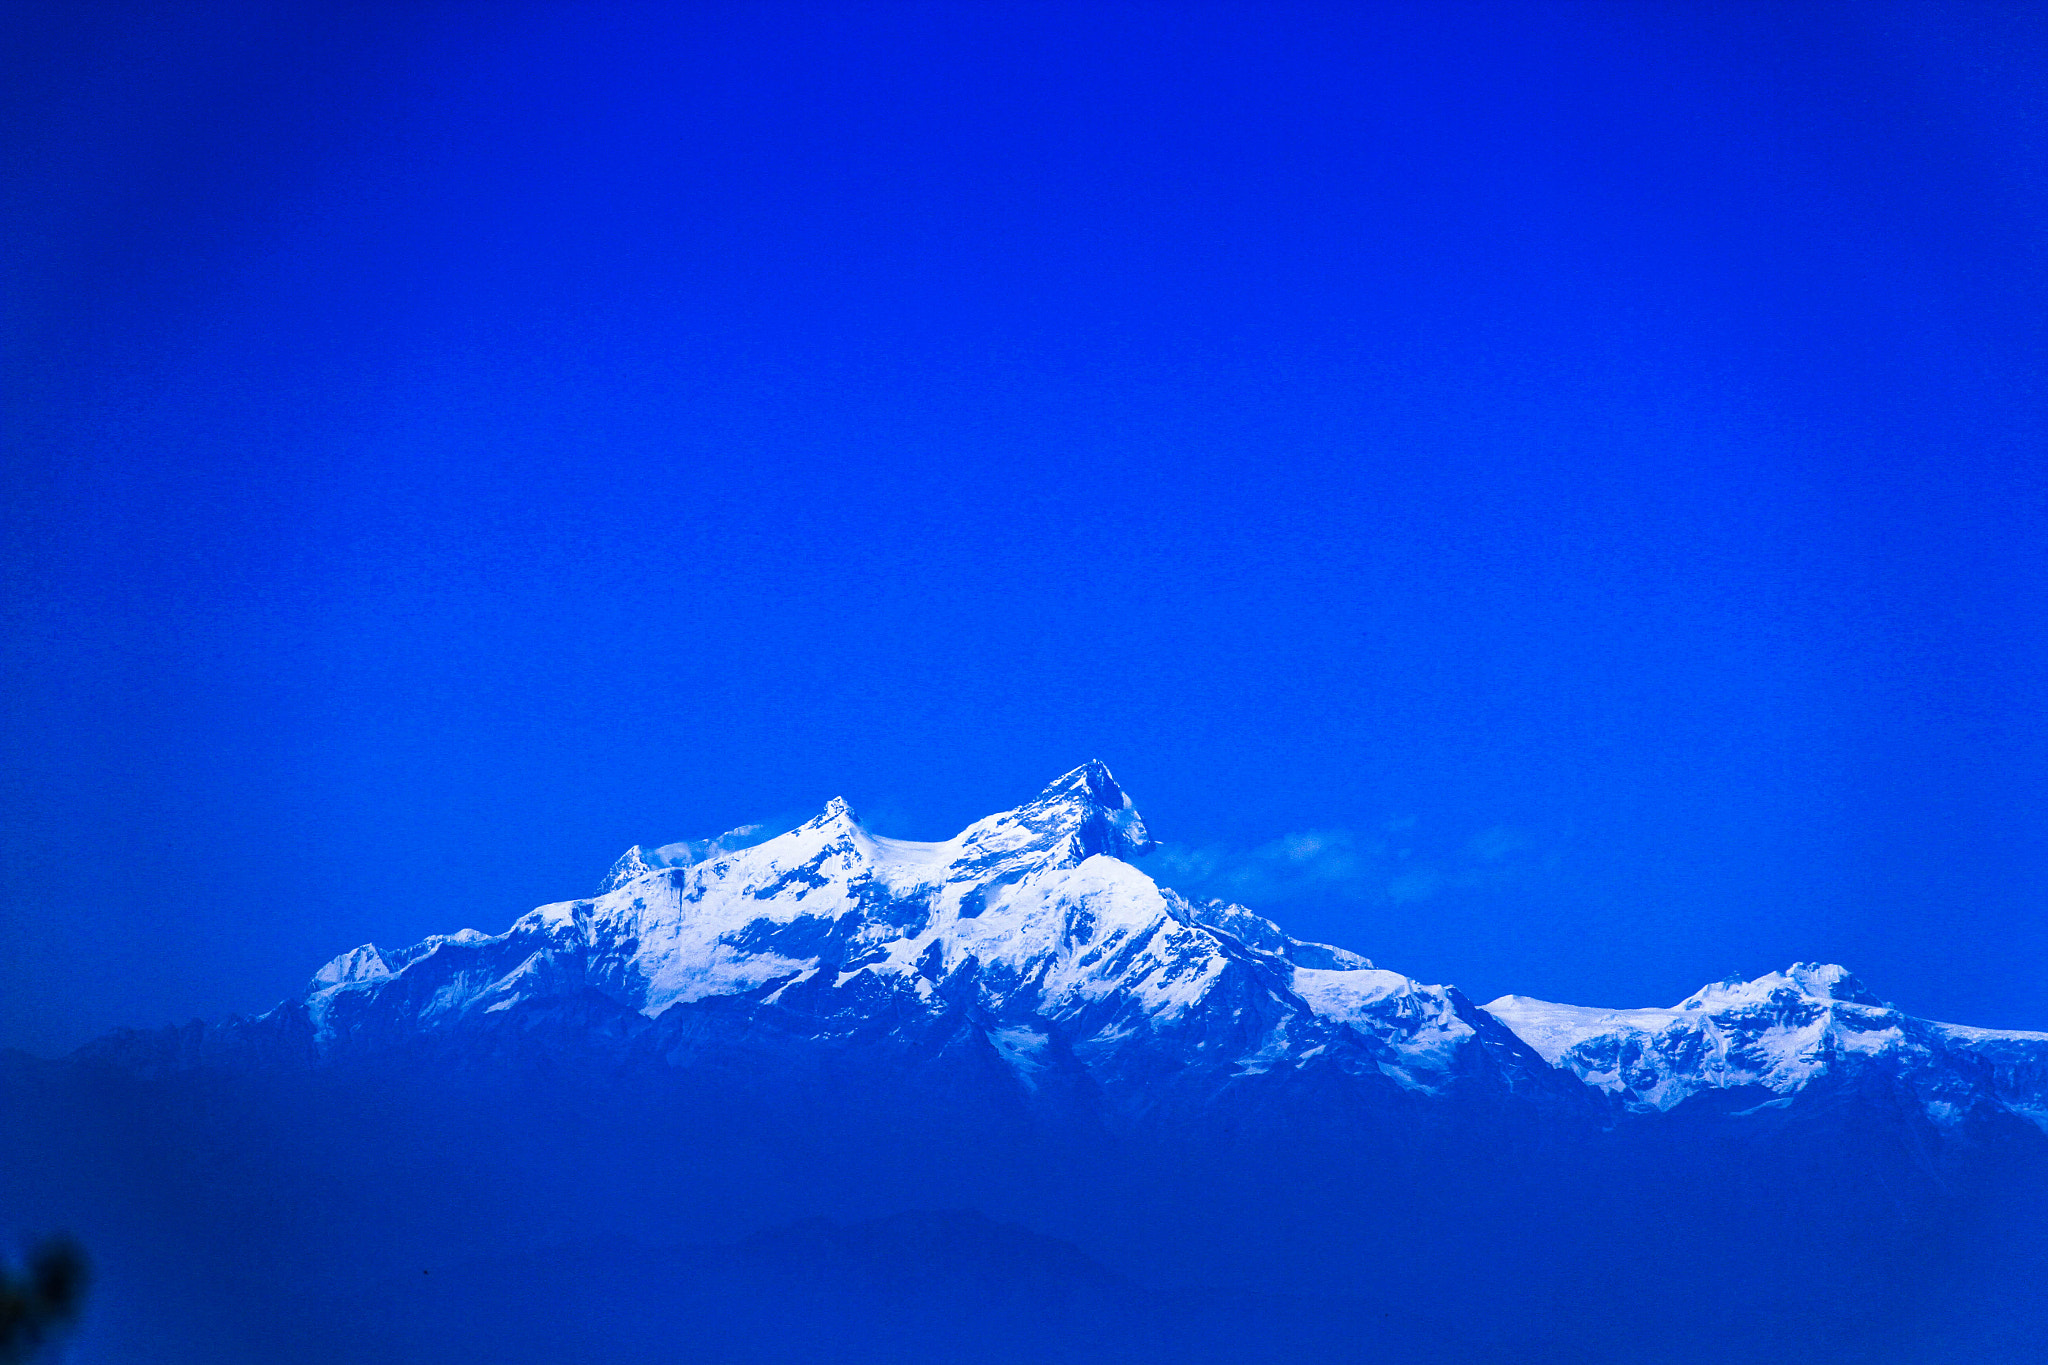 Photograph A Facade of Fishtail: My Nepal My Pride by Sudeep Devkota on 500px